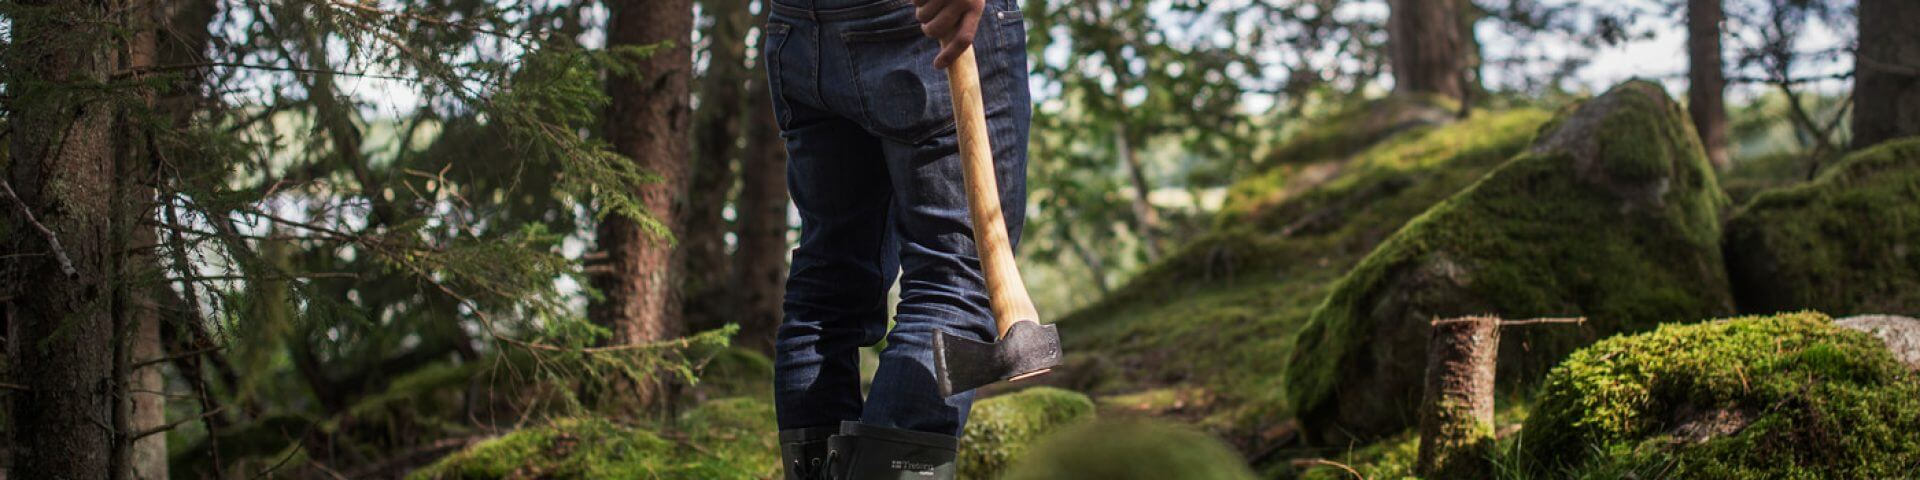 Hand holdning axe in forest